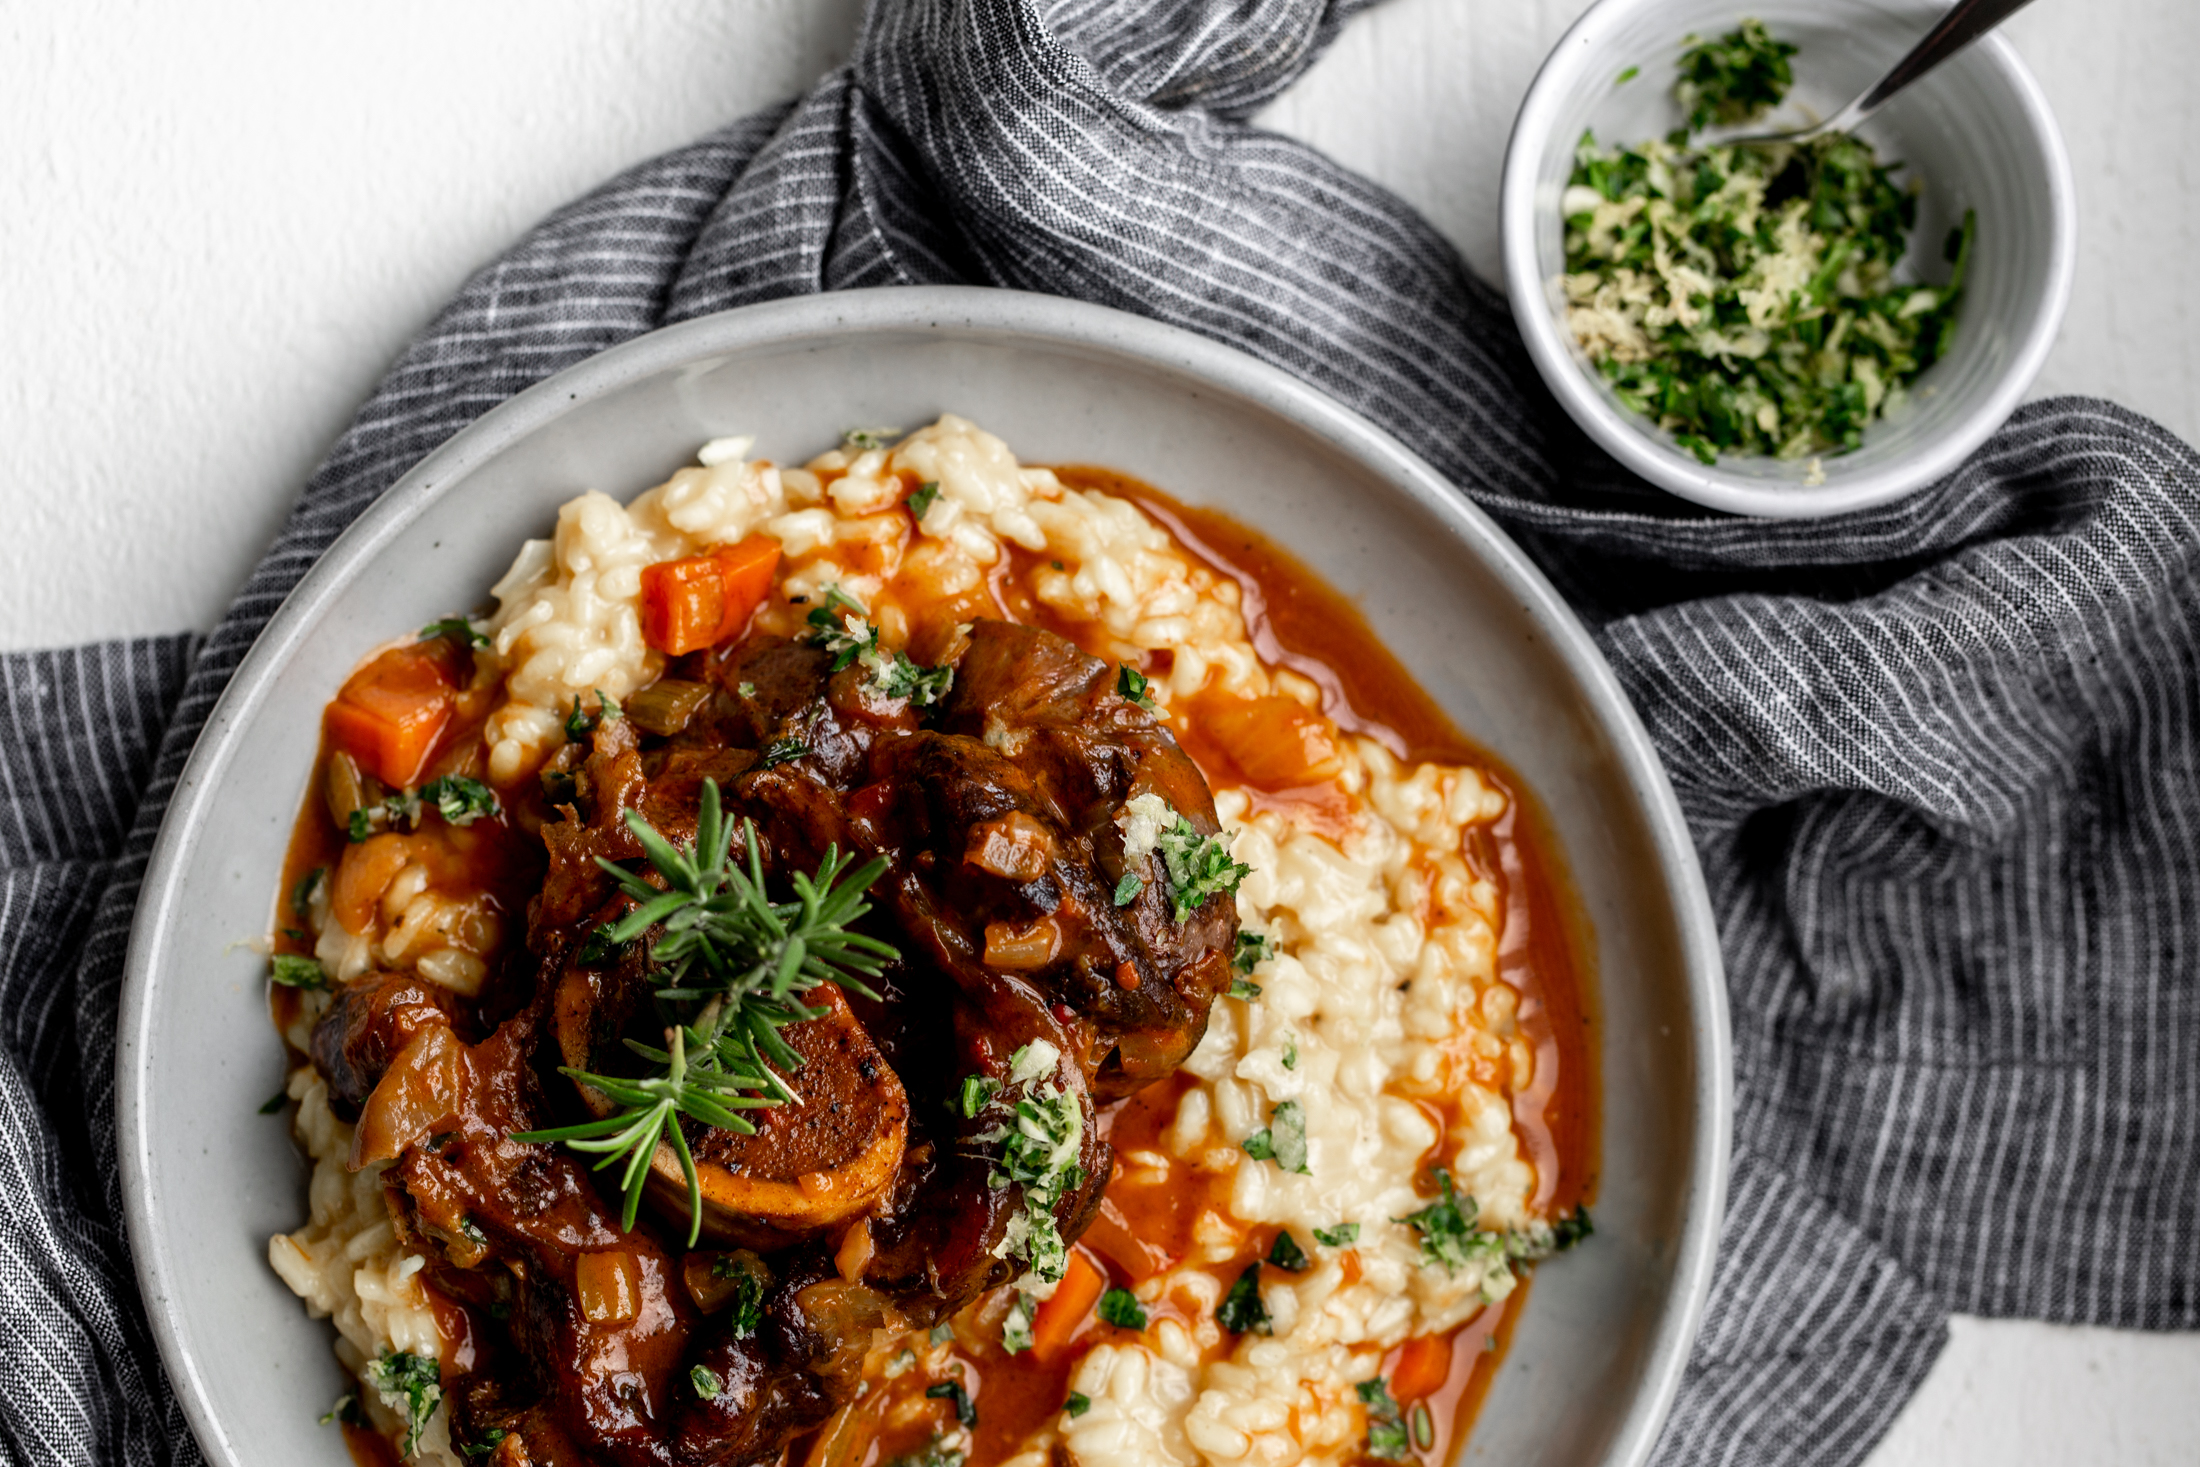 Veal Osso Buco recipe from cooking with cocktail rings over saffron risotto